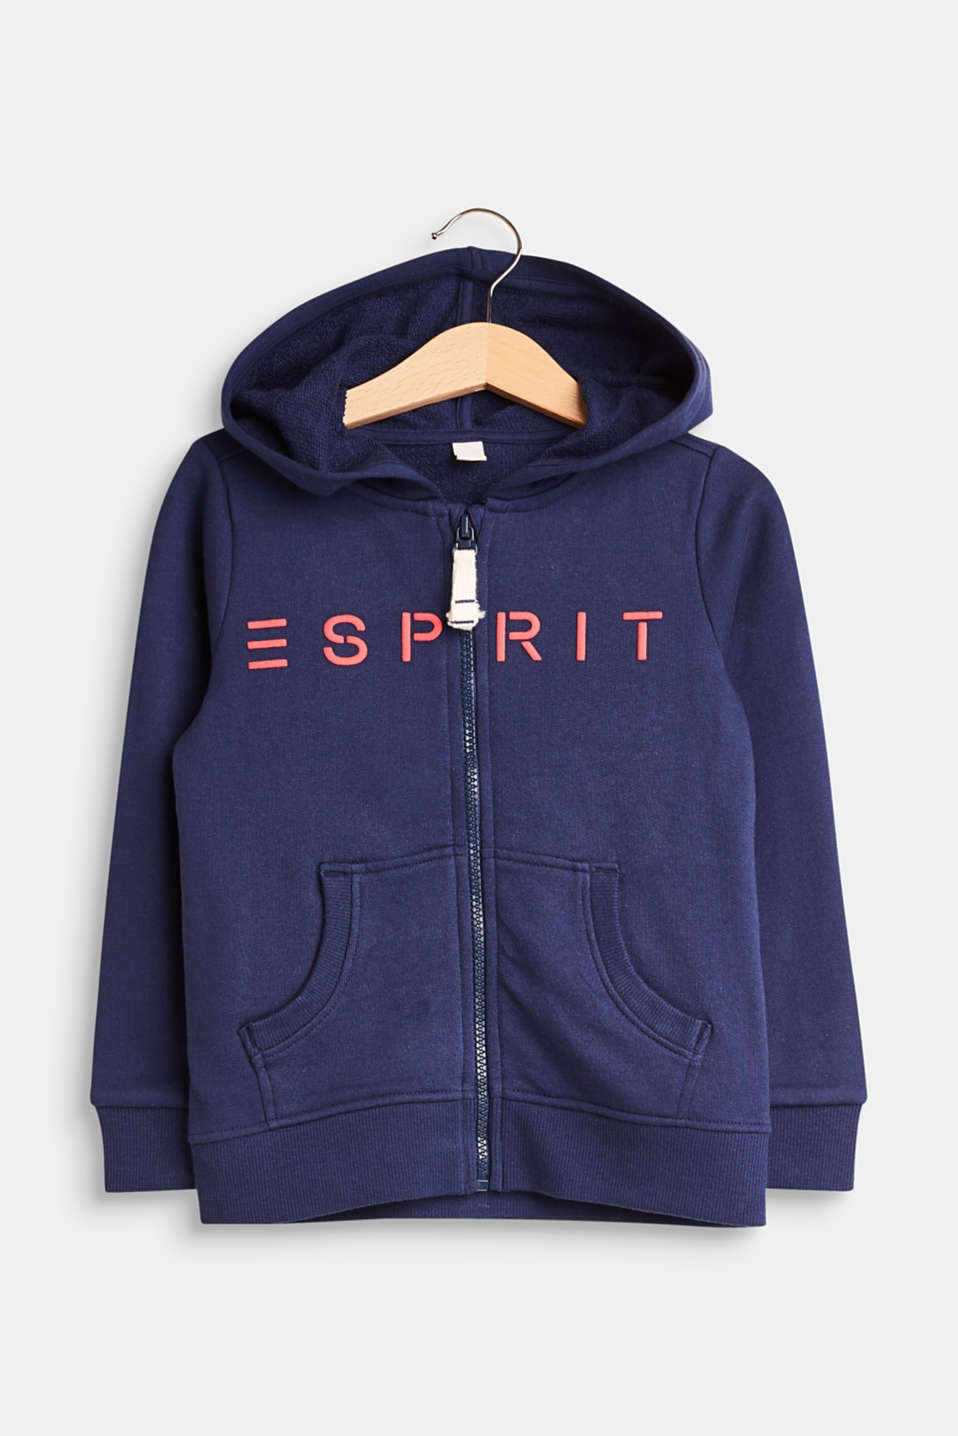 Esprit - Logo sweatshirt hoodie in a basic look